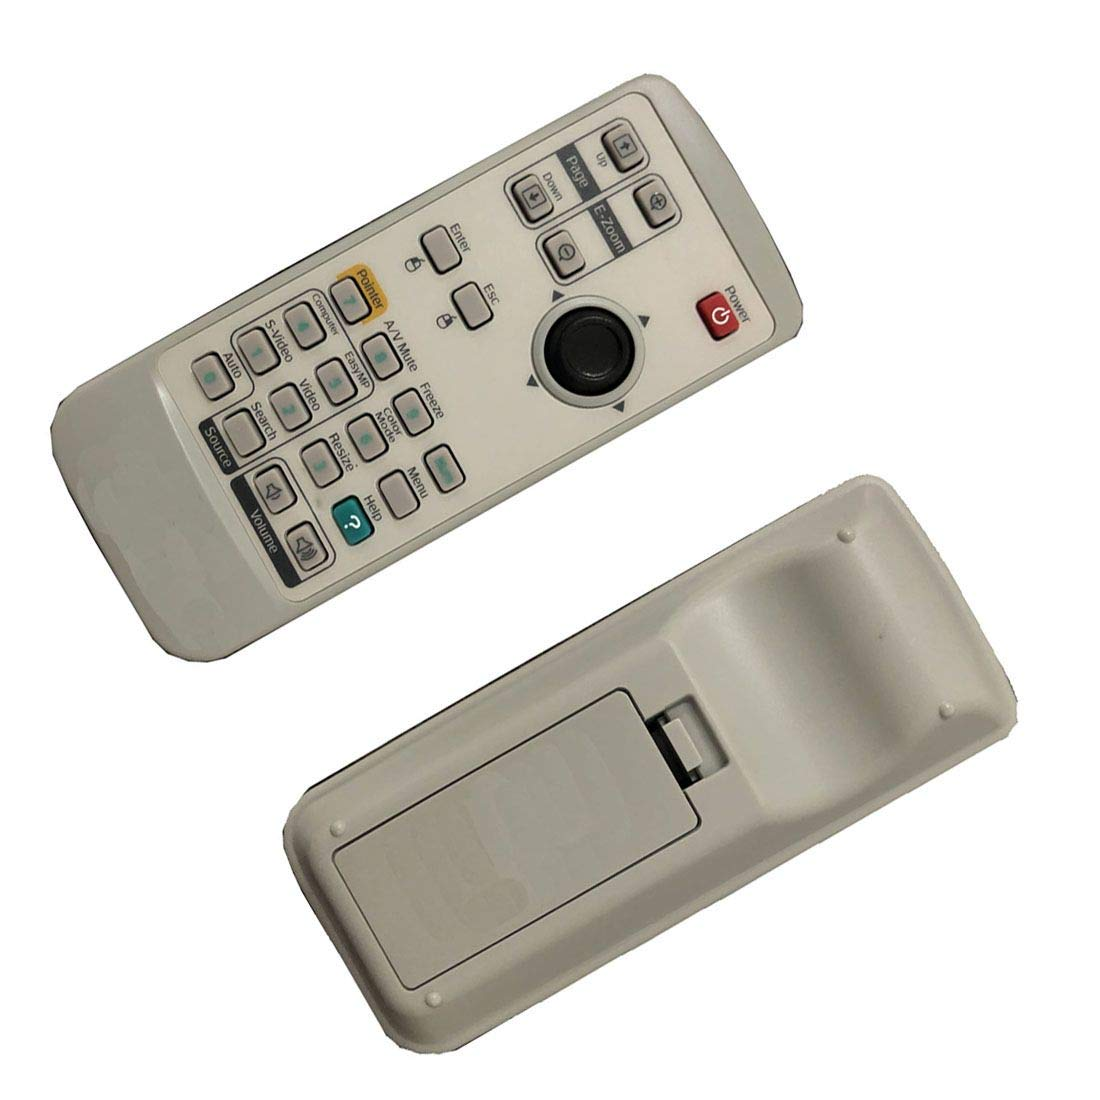 4EVER Replacment remote control for Epson Powerlite 905 96W 93 95 projector by 4EVER E.T.C